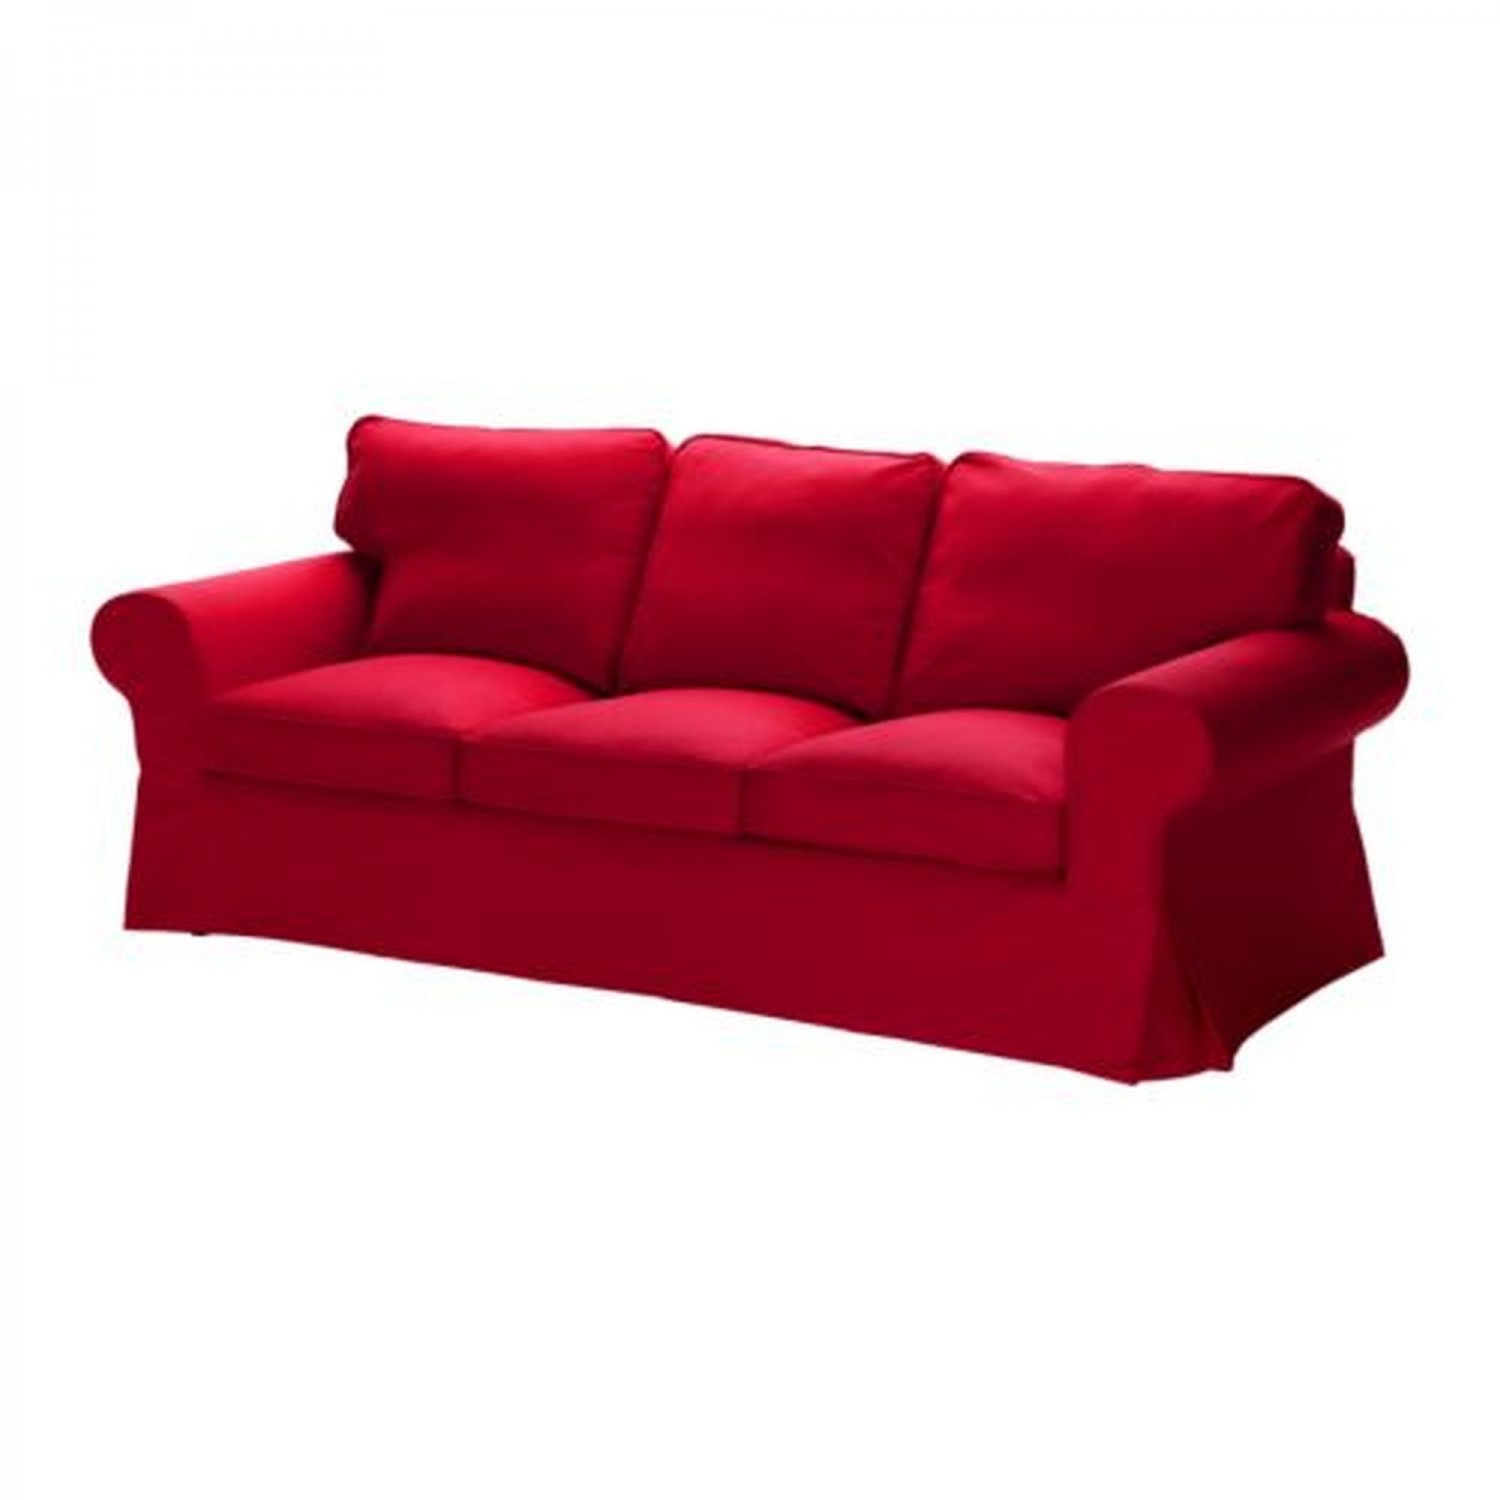 ikea ektorp 3 seat sofa slipcover cover idemo red. Black Bedroom Furniture Sets. Home Design Ideas